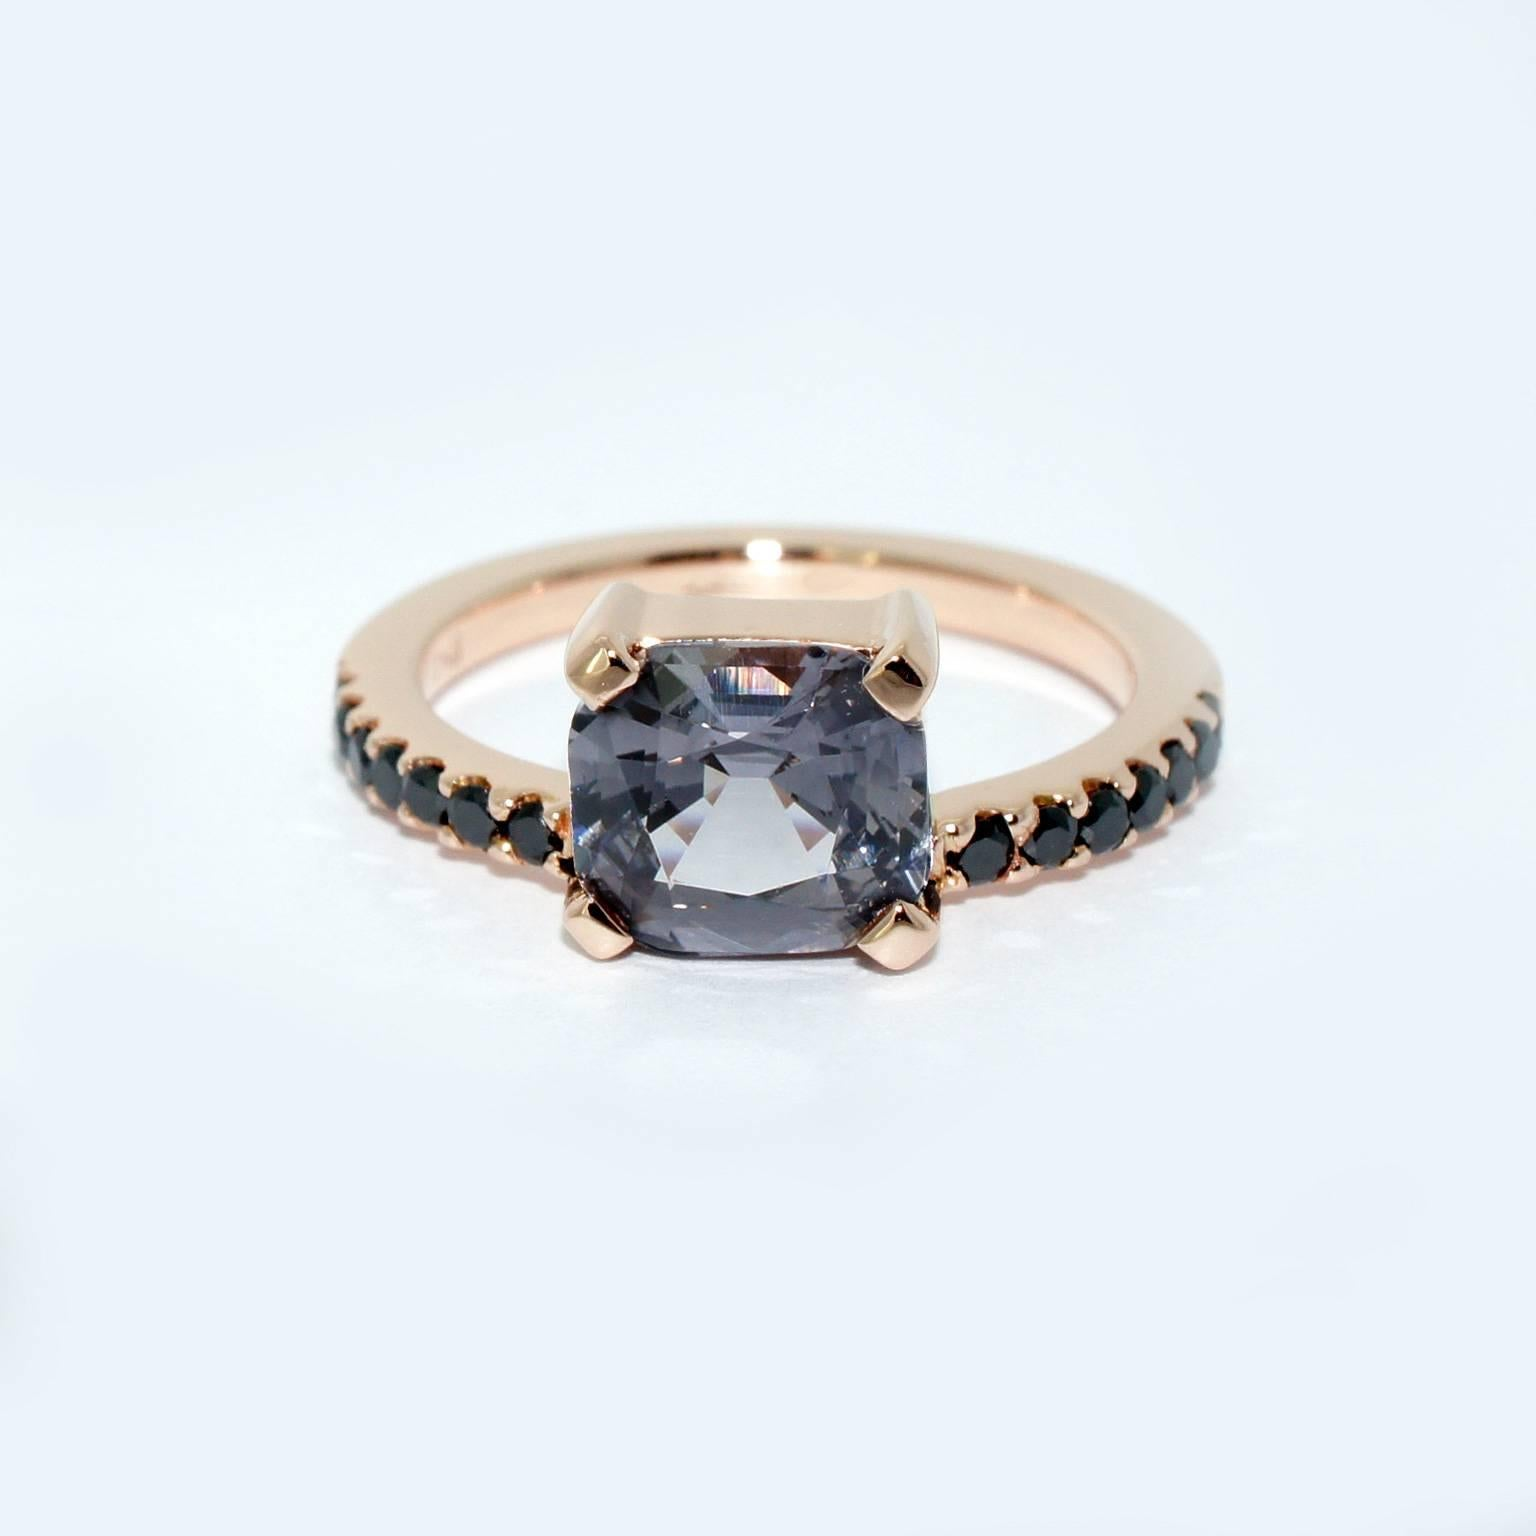 rings silver salt diamond solitaire profile prong grey carved ring rose and by rosecut pepper anueva gold collection evergreen setting low jewelry band of skinny hand products dainty galaxy